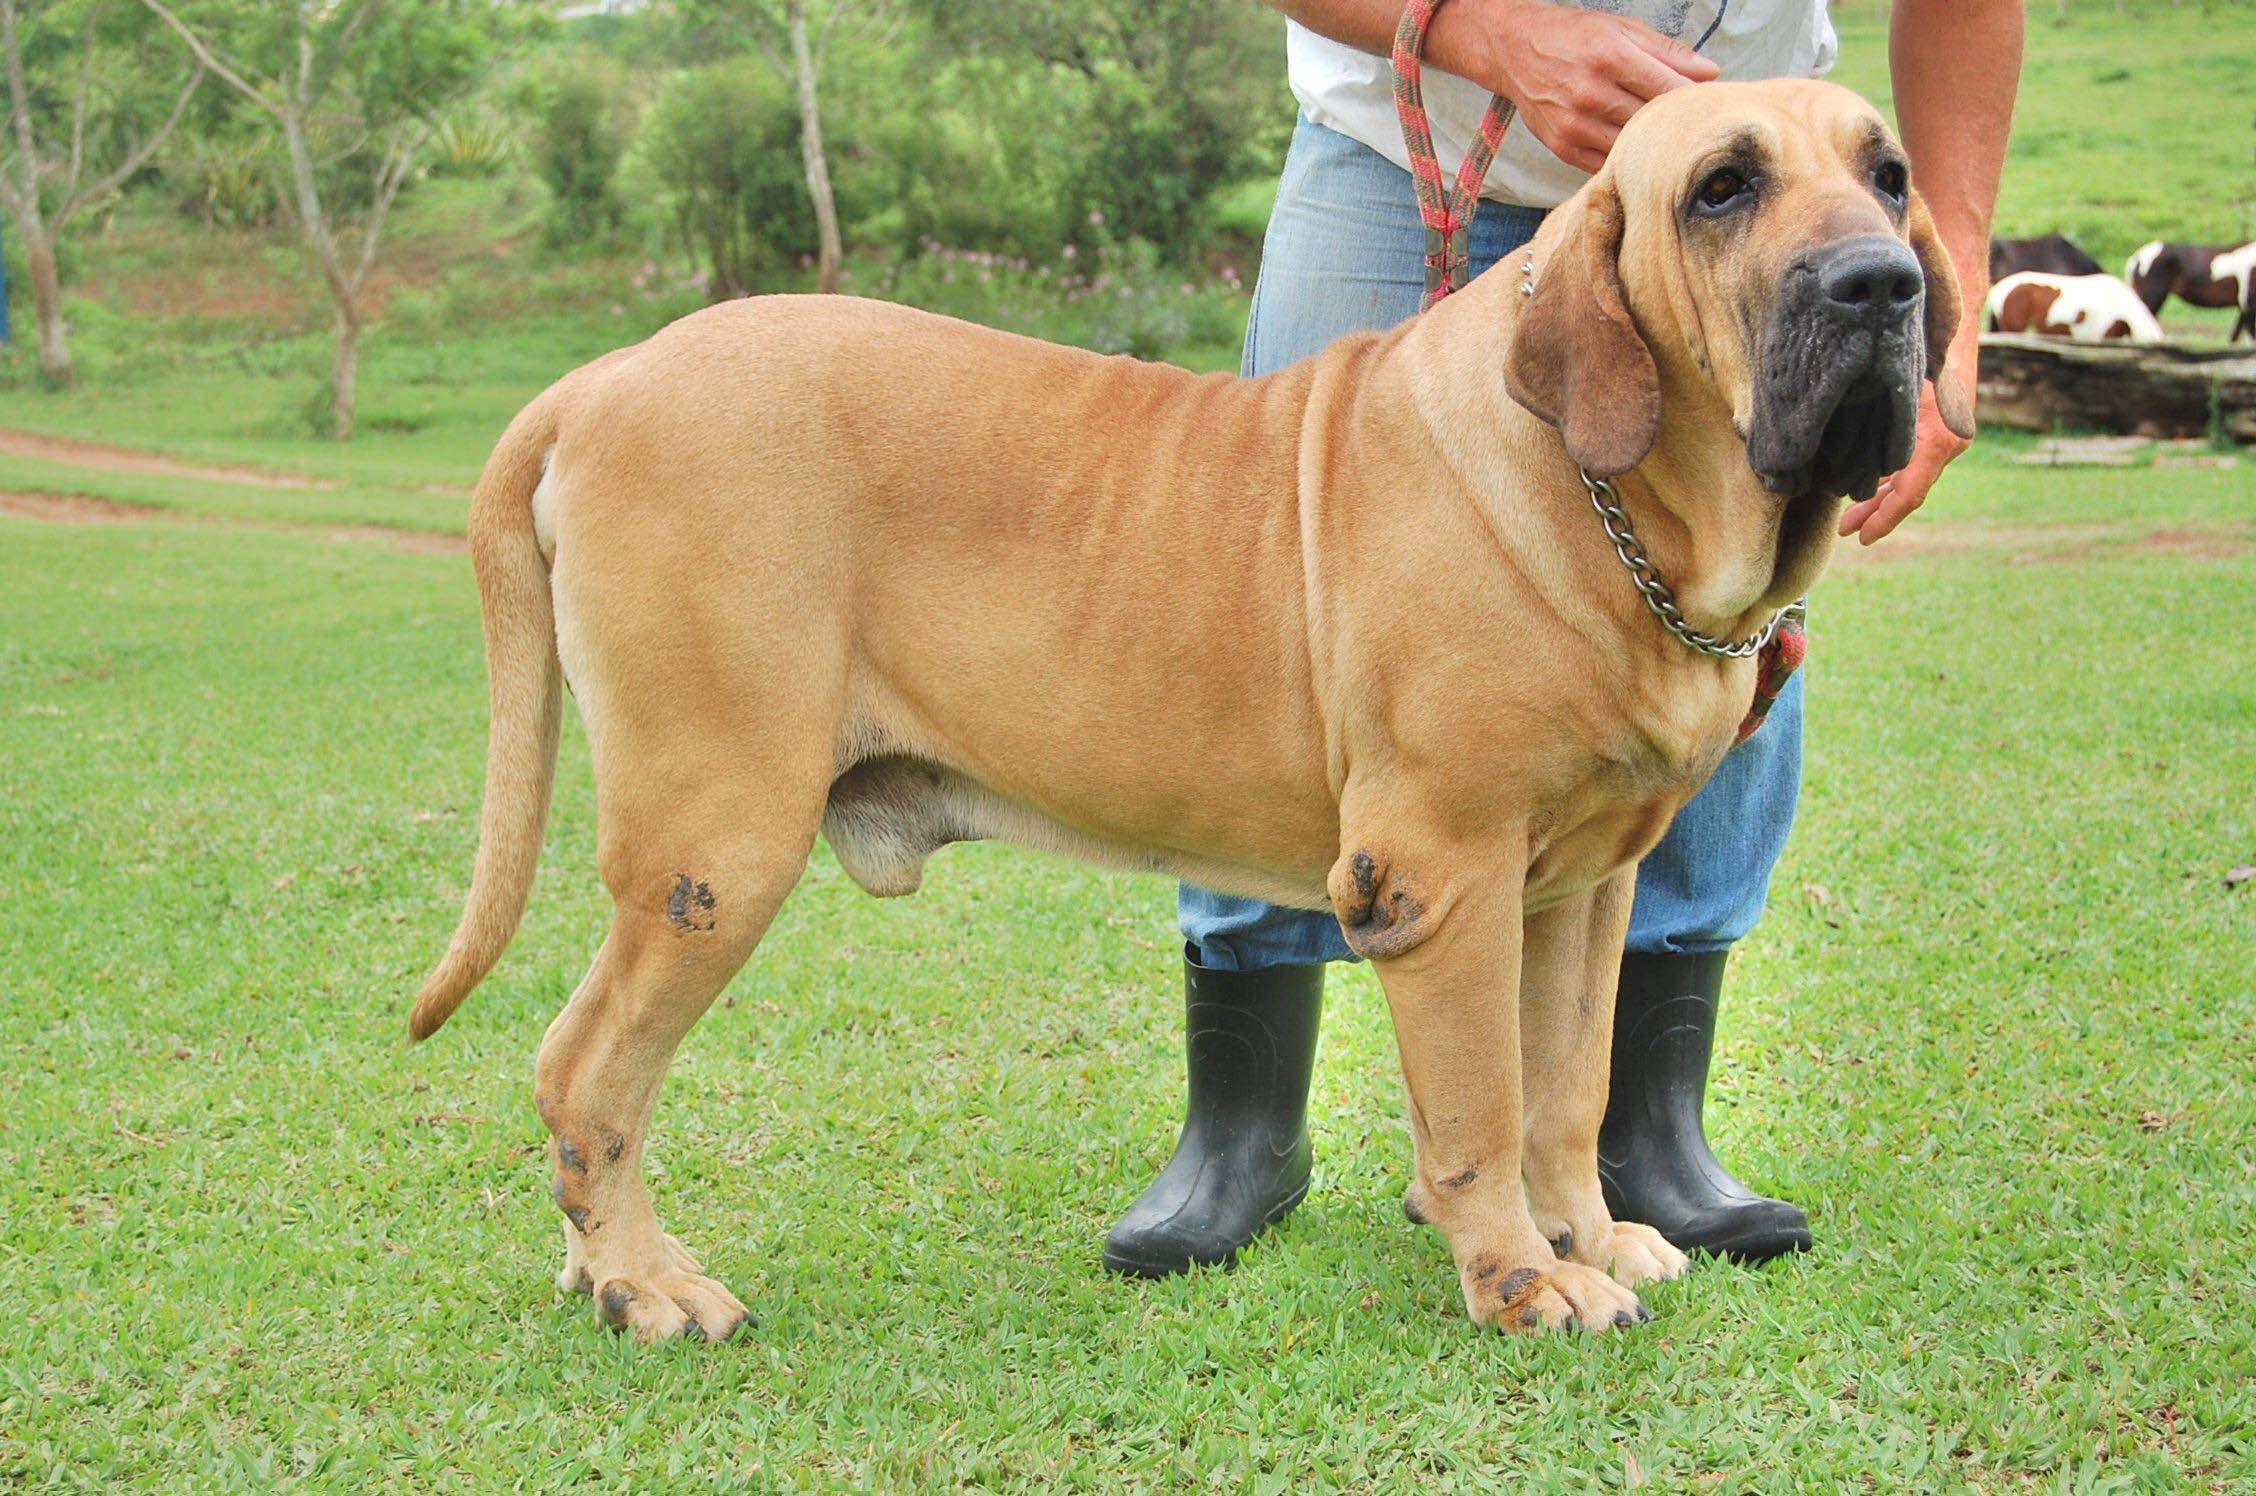 Pacara do Itanhandu, another Fila that the author considers a fine example of breed type.